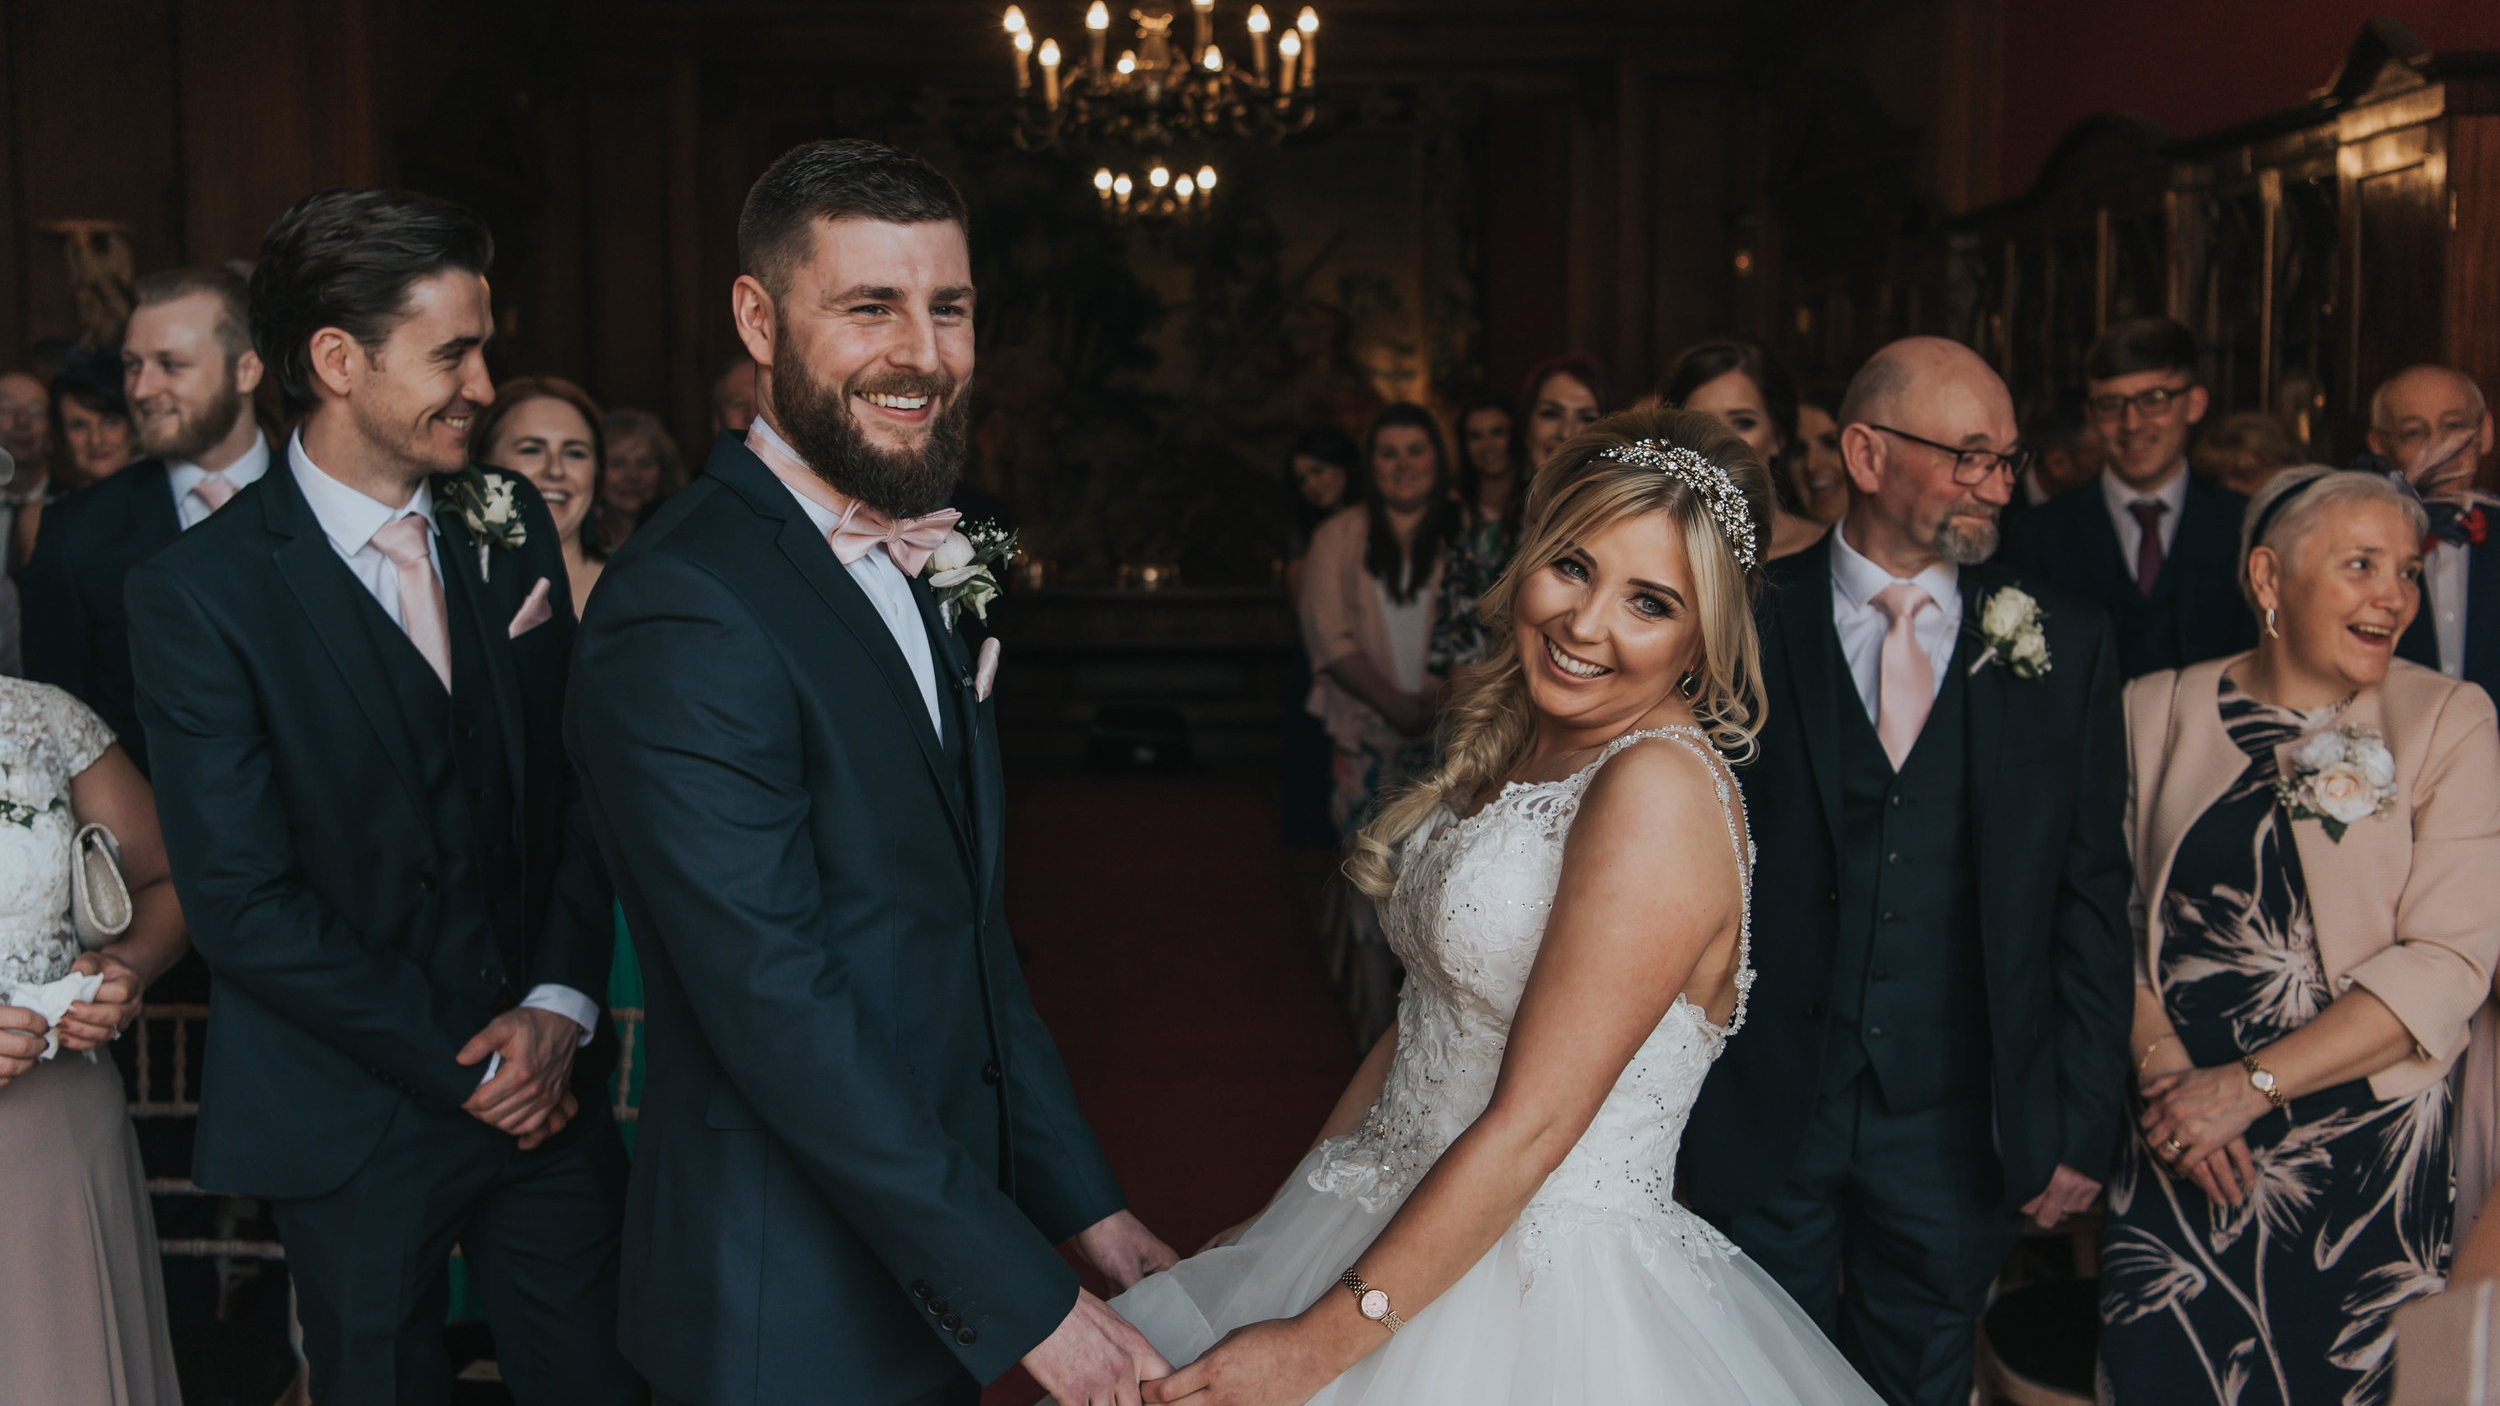 Thornton Manor Wedding Photographer based in Liverpol and Cheshire (9 of 19).jpg